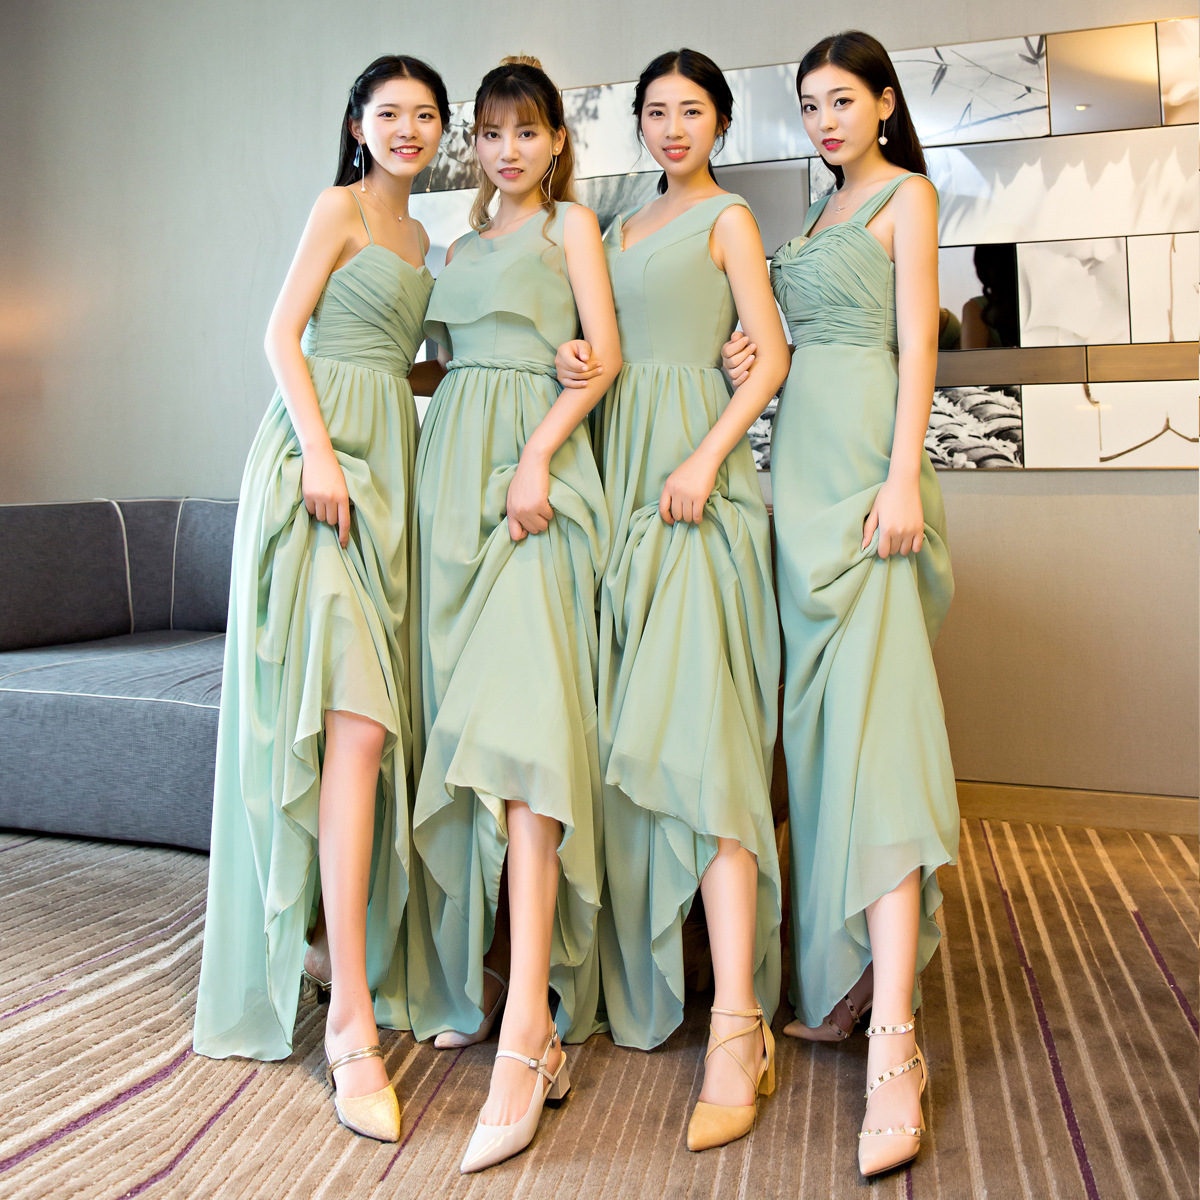 Light Green Elegant Dress Women For Wedding Party Long Bridesmaid Dresses Plus Size Chiffon Custom Made Bridesmaids Dresses 2020